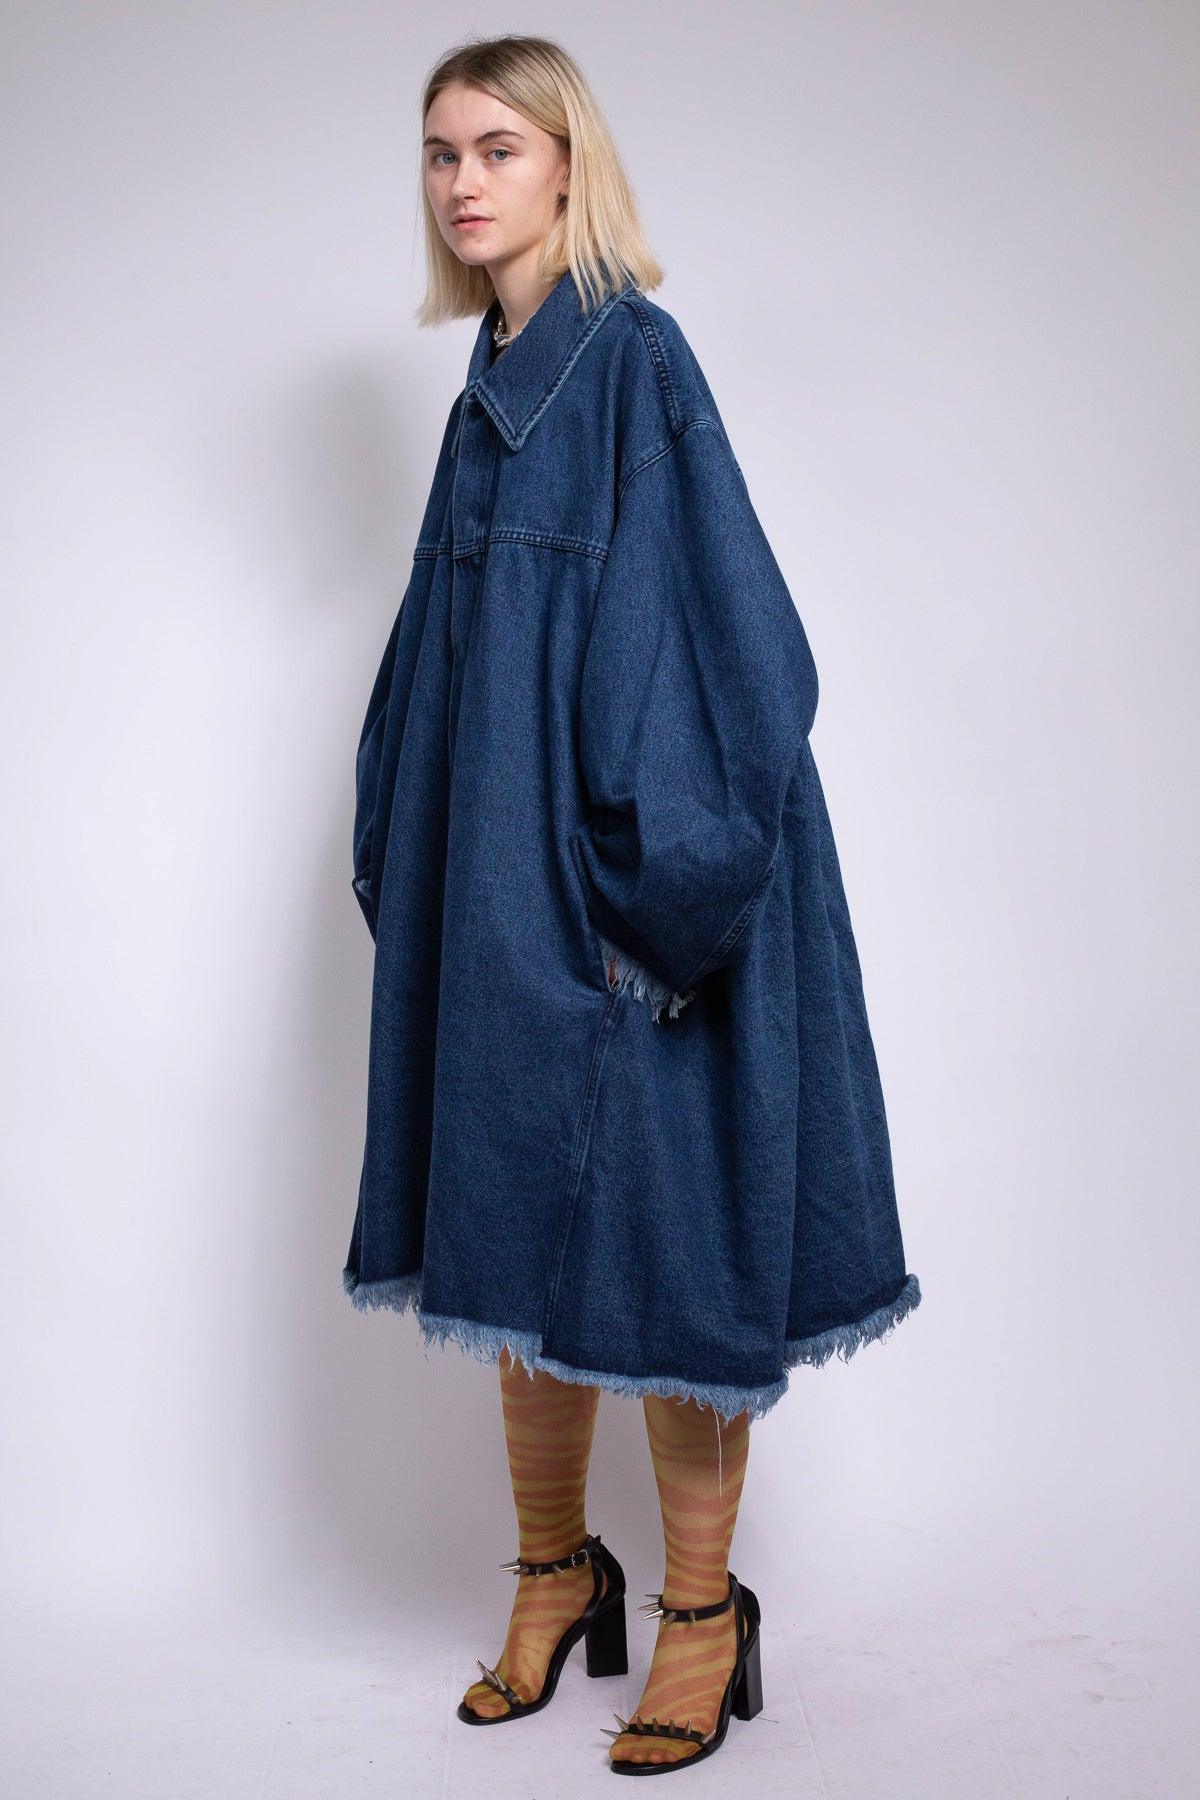 OVERSIZED COAT WITH PLEATED BACK IN BLUE DENIM